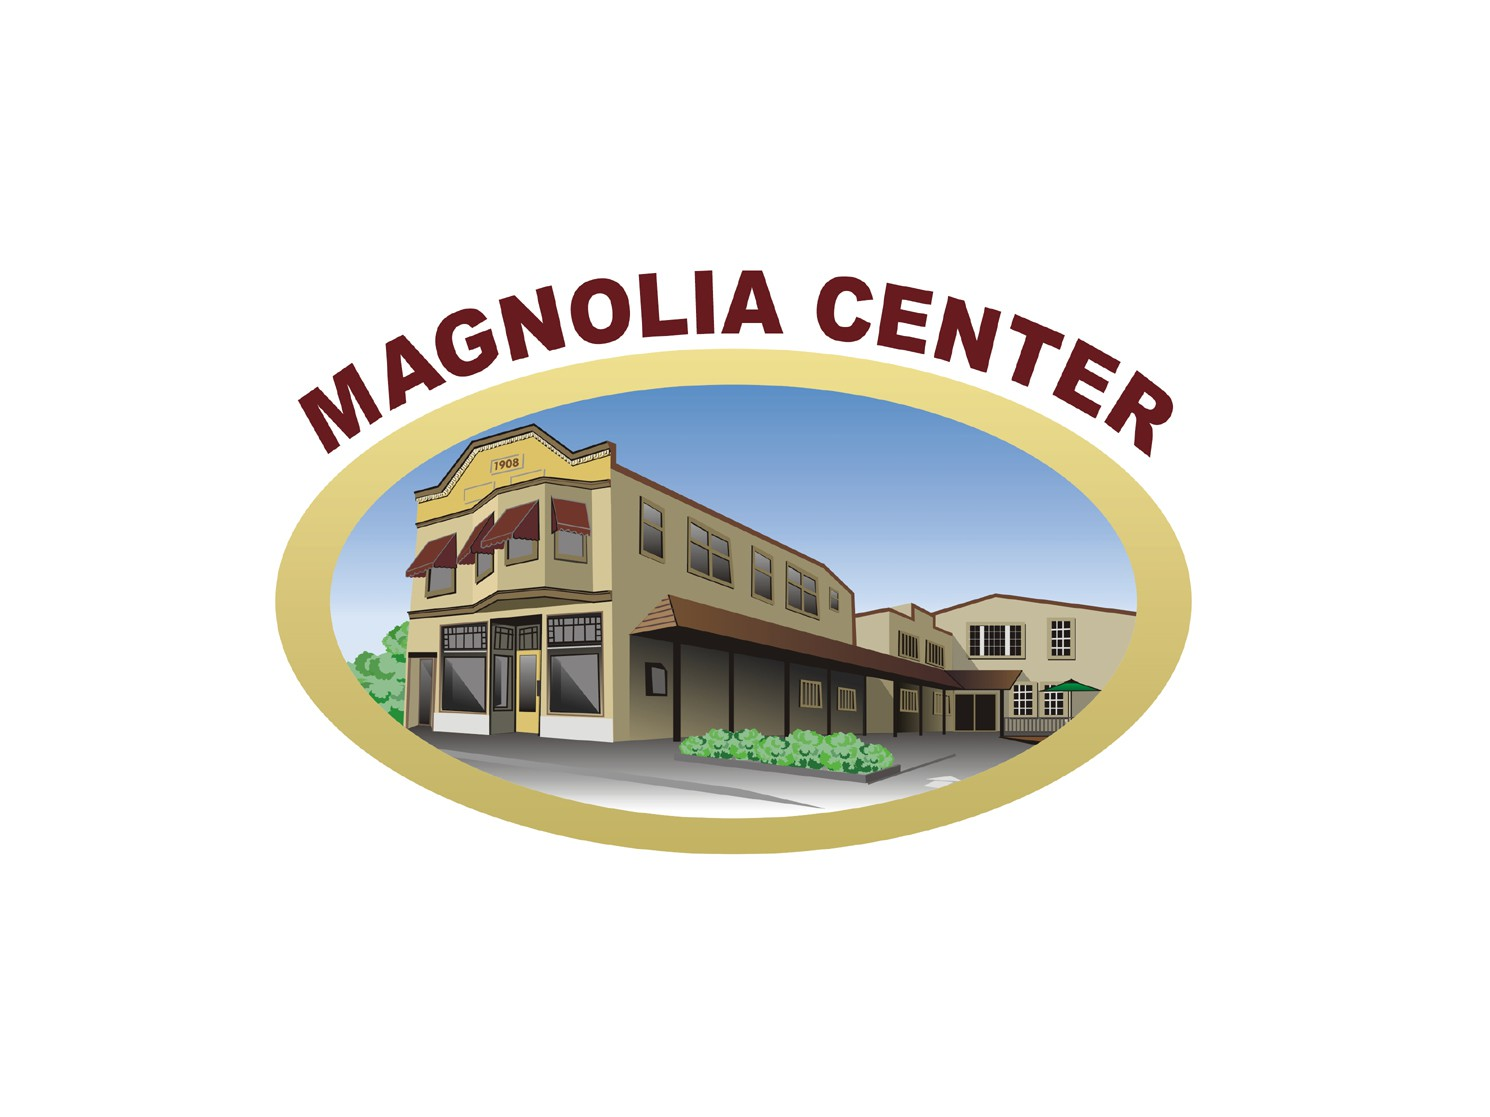 New logo wanted for Magnolia Center